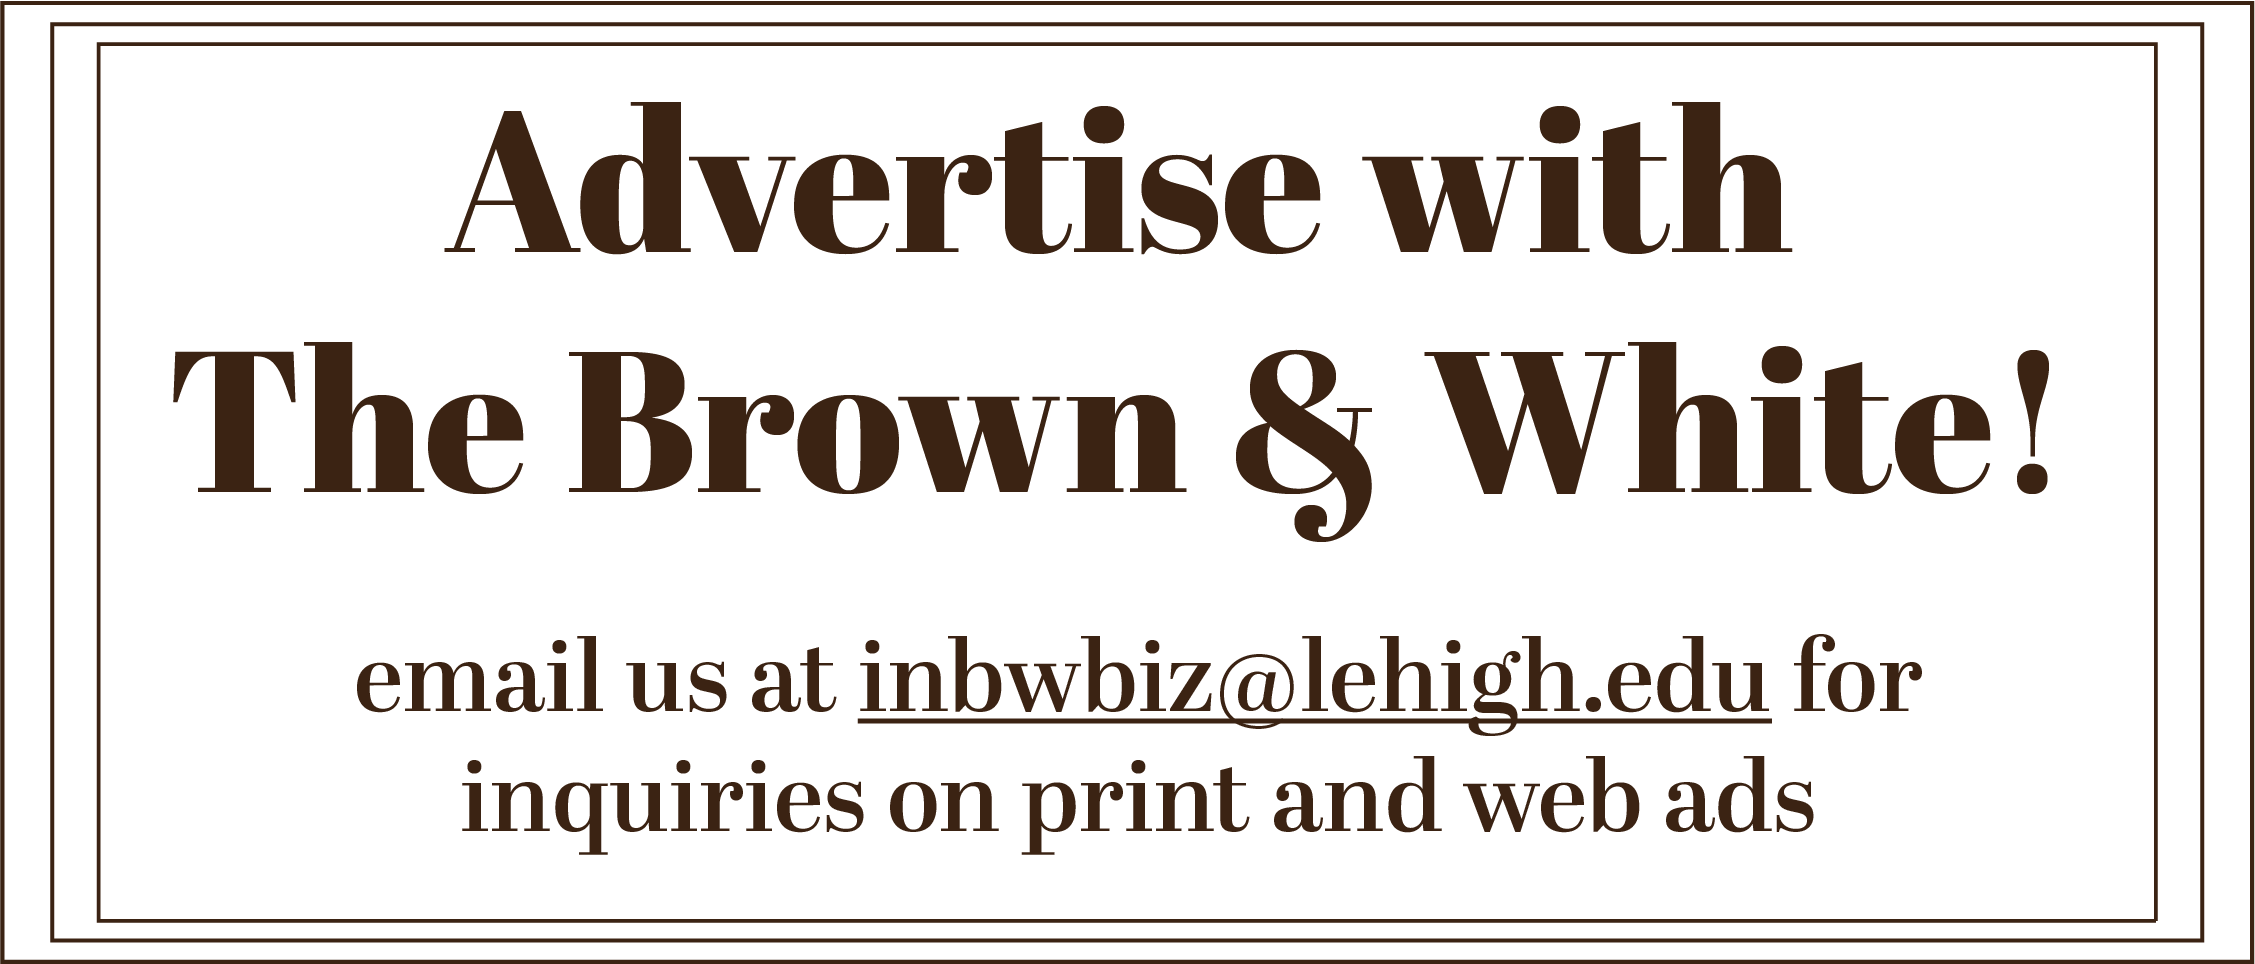 Advertise with the Brown and White. Email us at inbwbiz@lehigh.edu